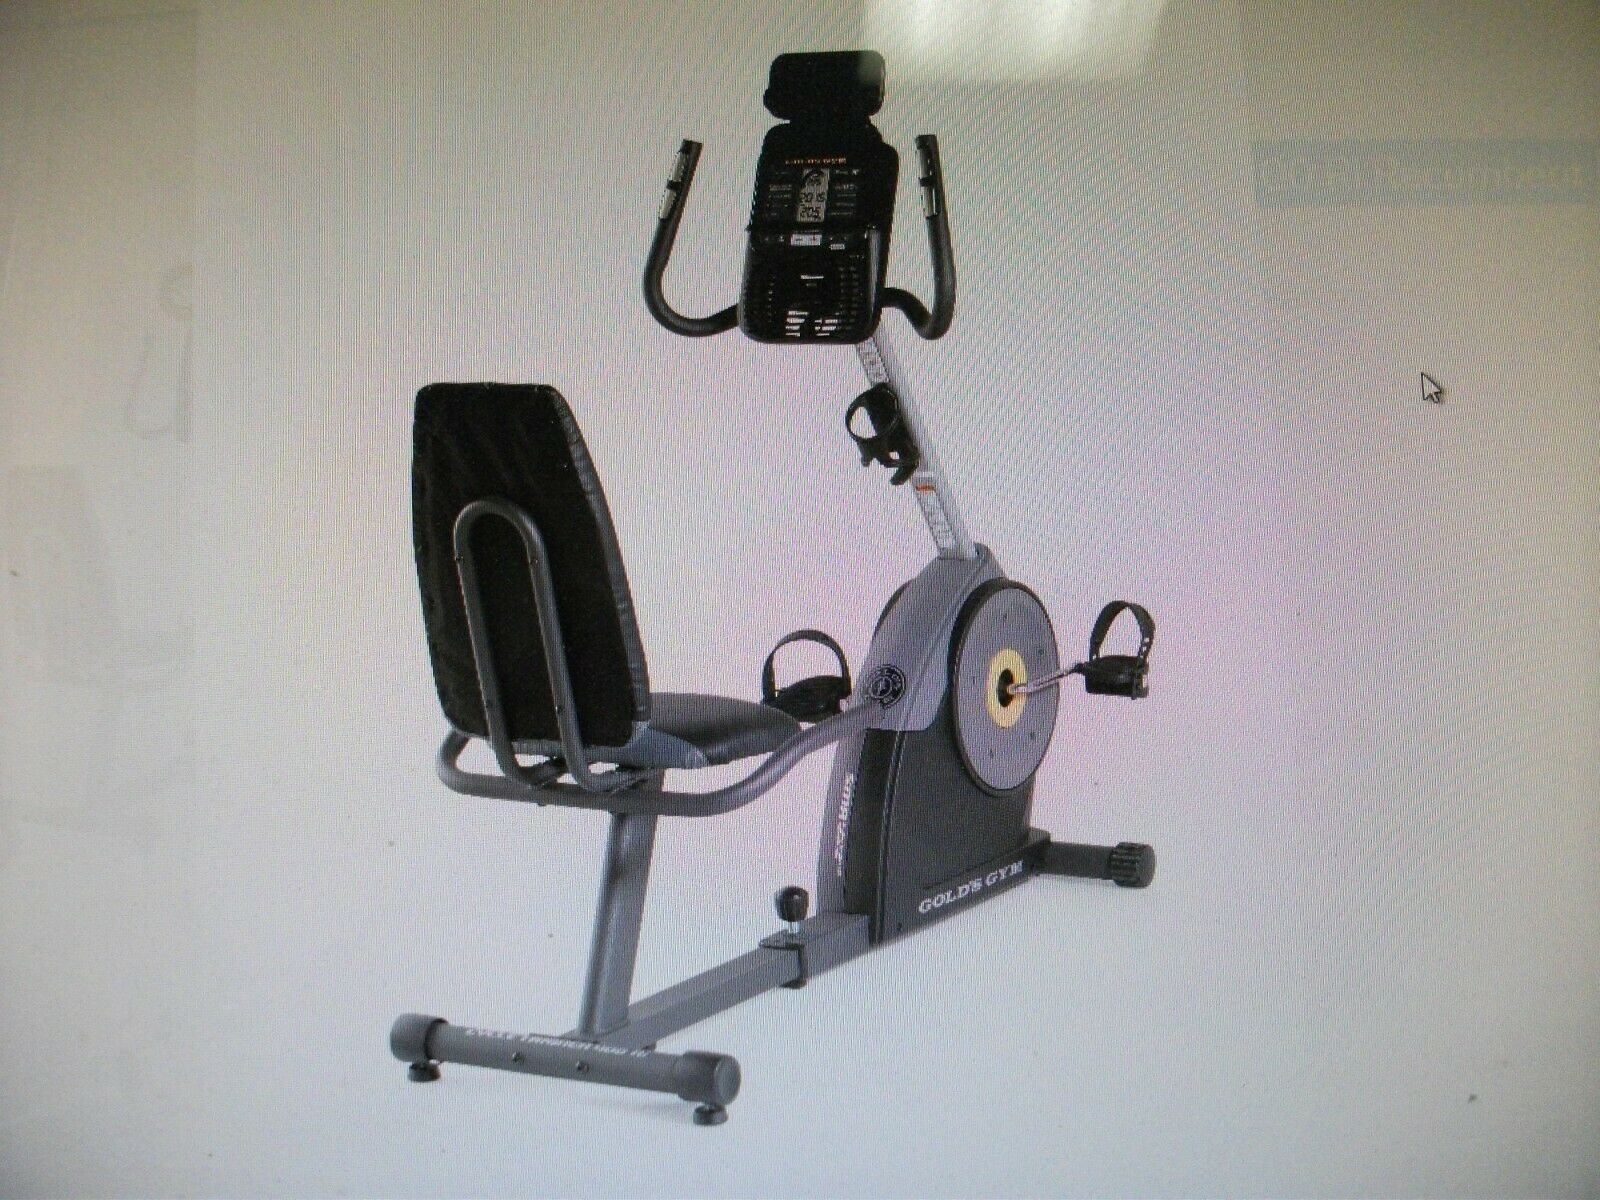 Gold's Gym Cycle Trainer 400 Ri Recumbent Exercise Bike - Local pick up in NJ bike cycle exercise gym local pick recumbent trainer